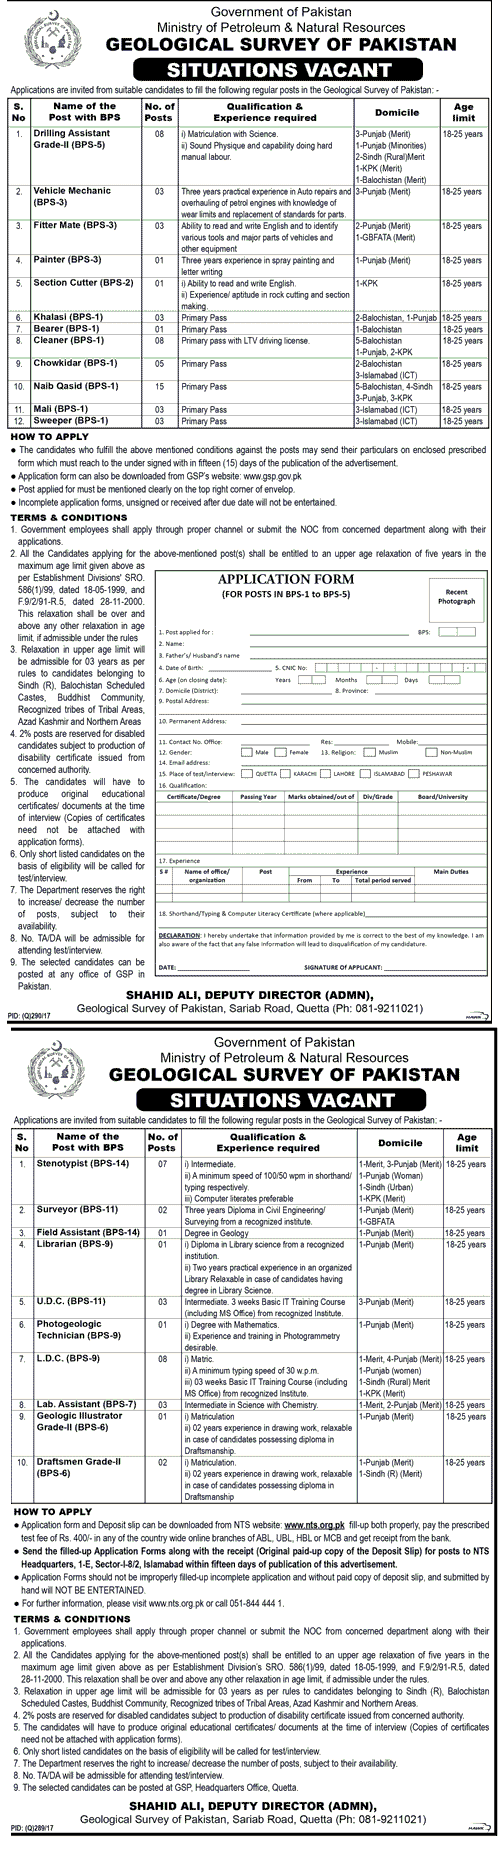 Geological Survey Of Pakistan Jobs 2017 Ministry Of Petroleum Natural Resources GOVT Vacancies